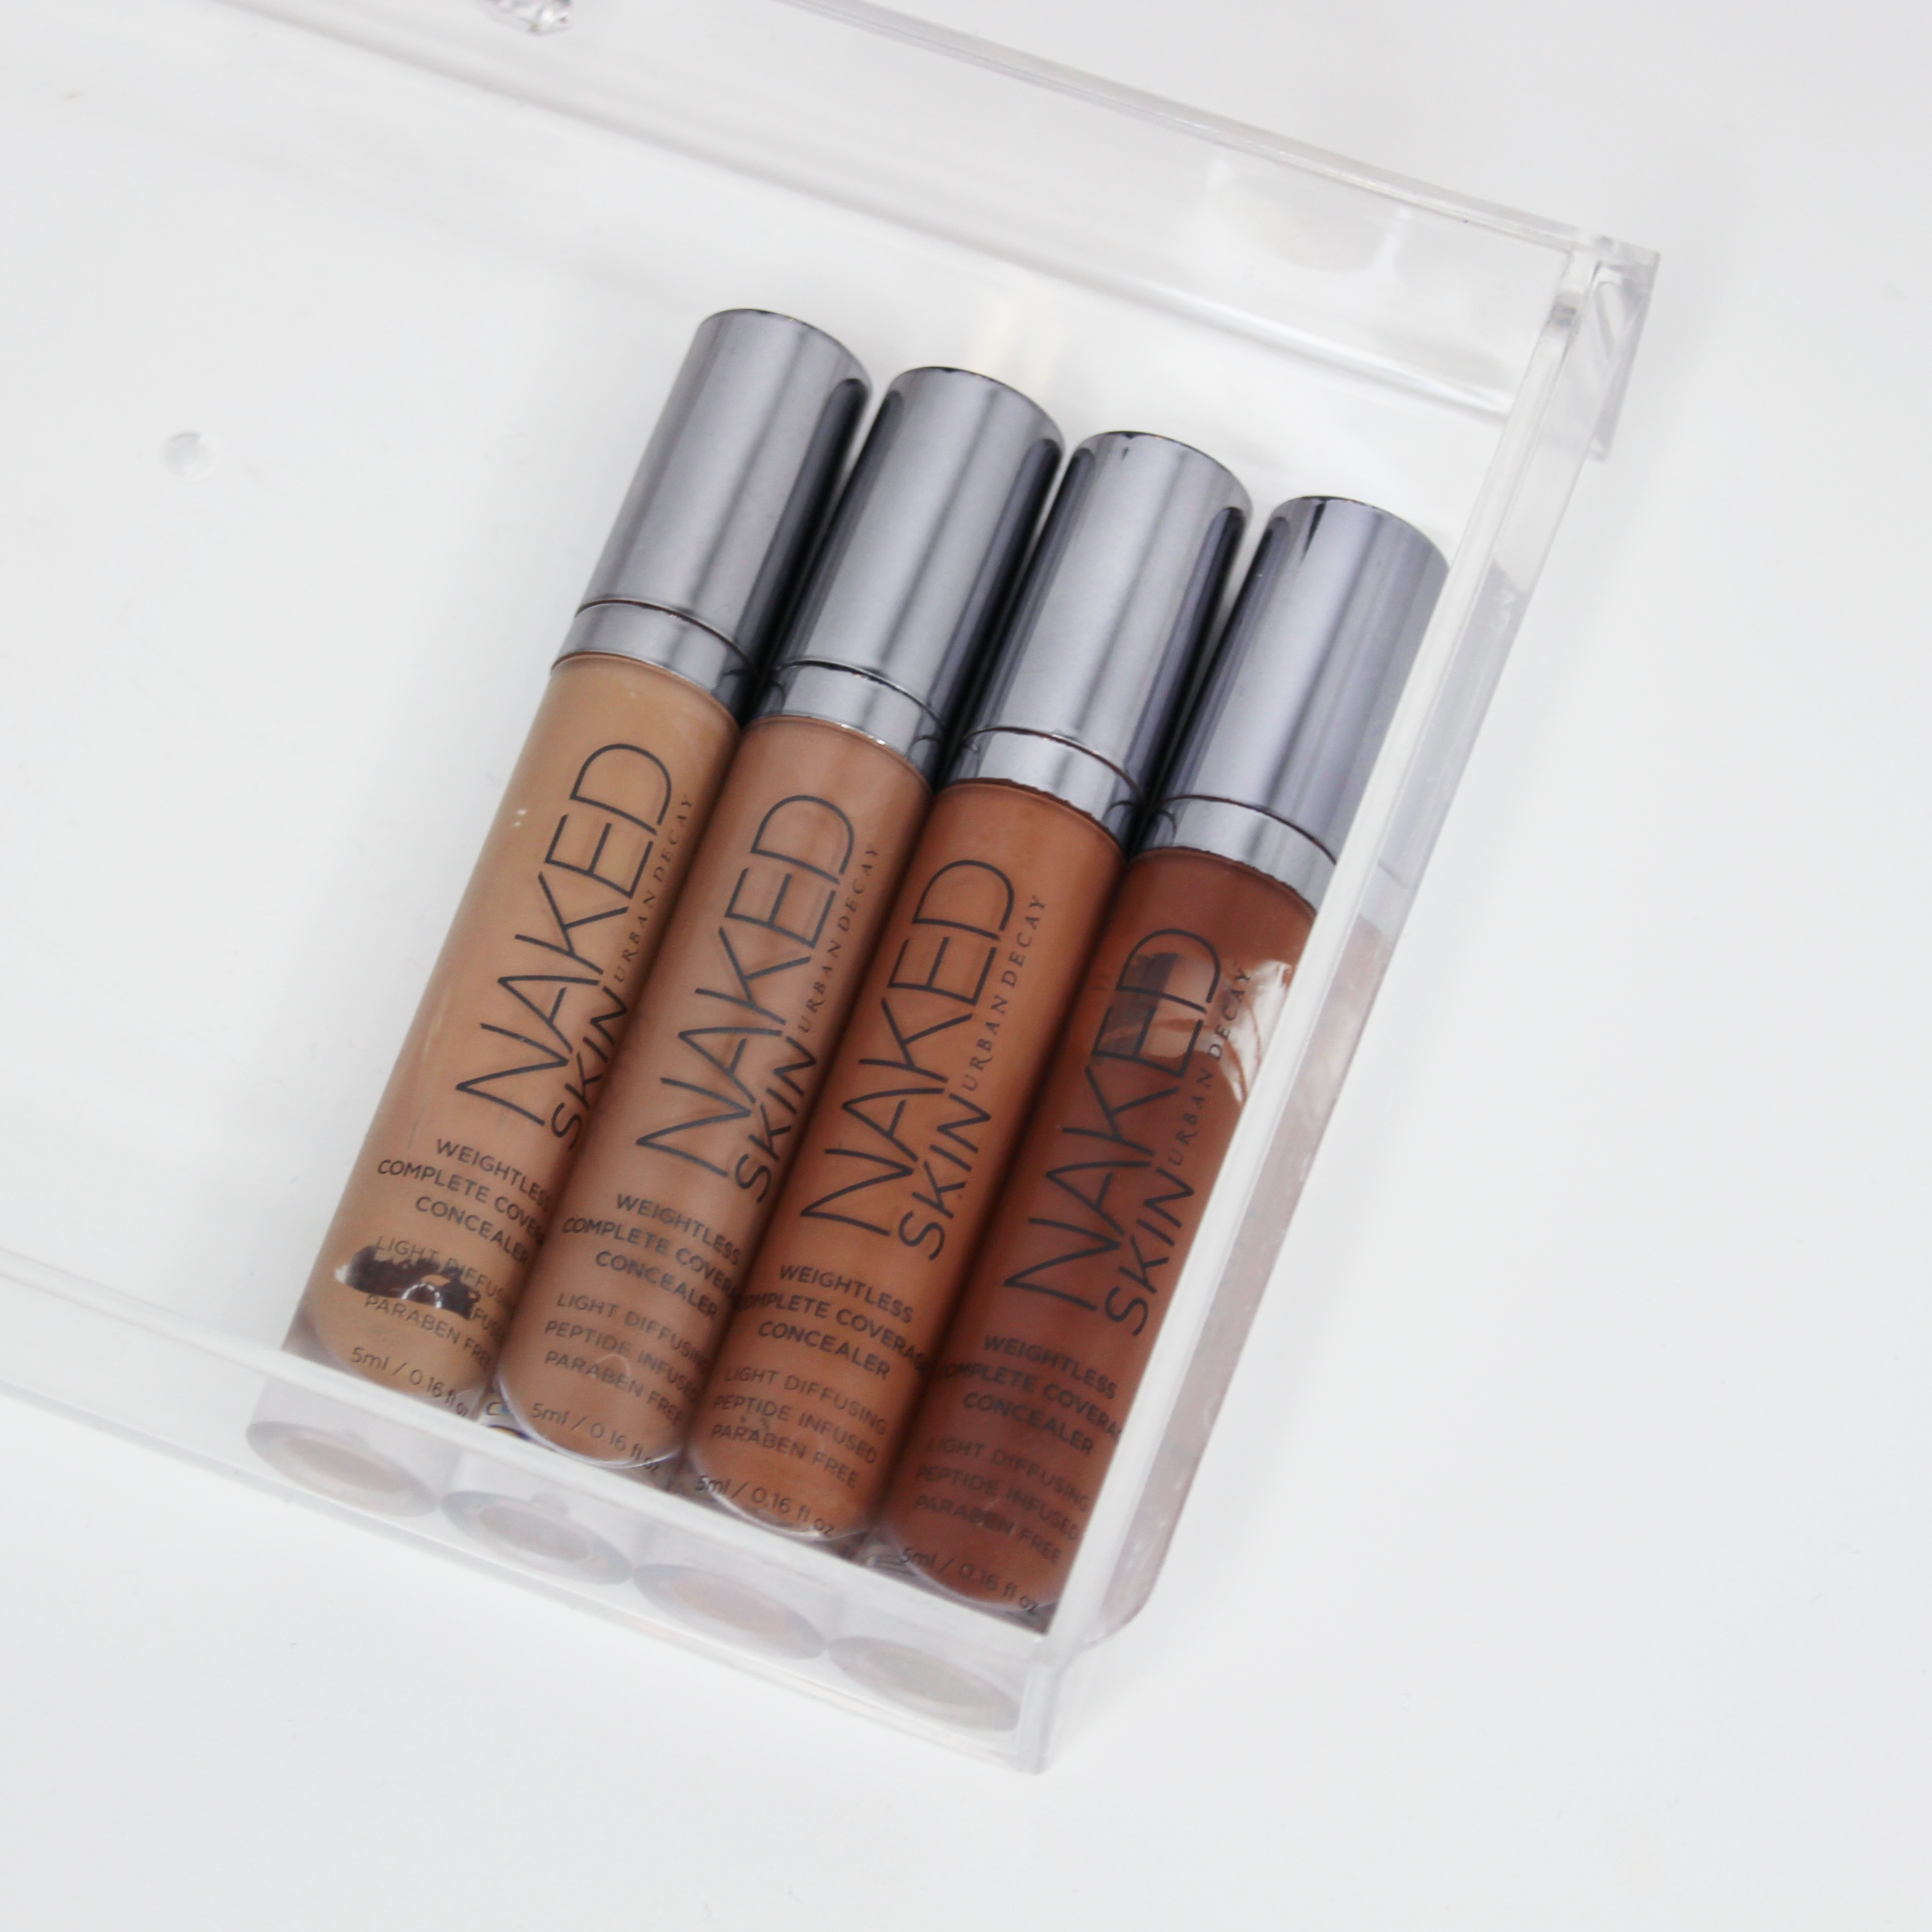 Urban Decay Concealer i fire ulike nyanser